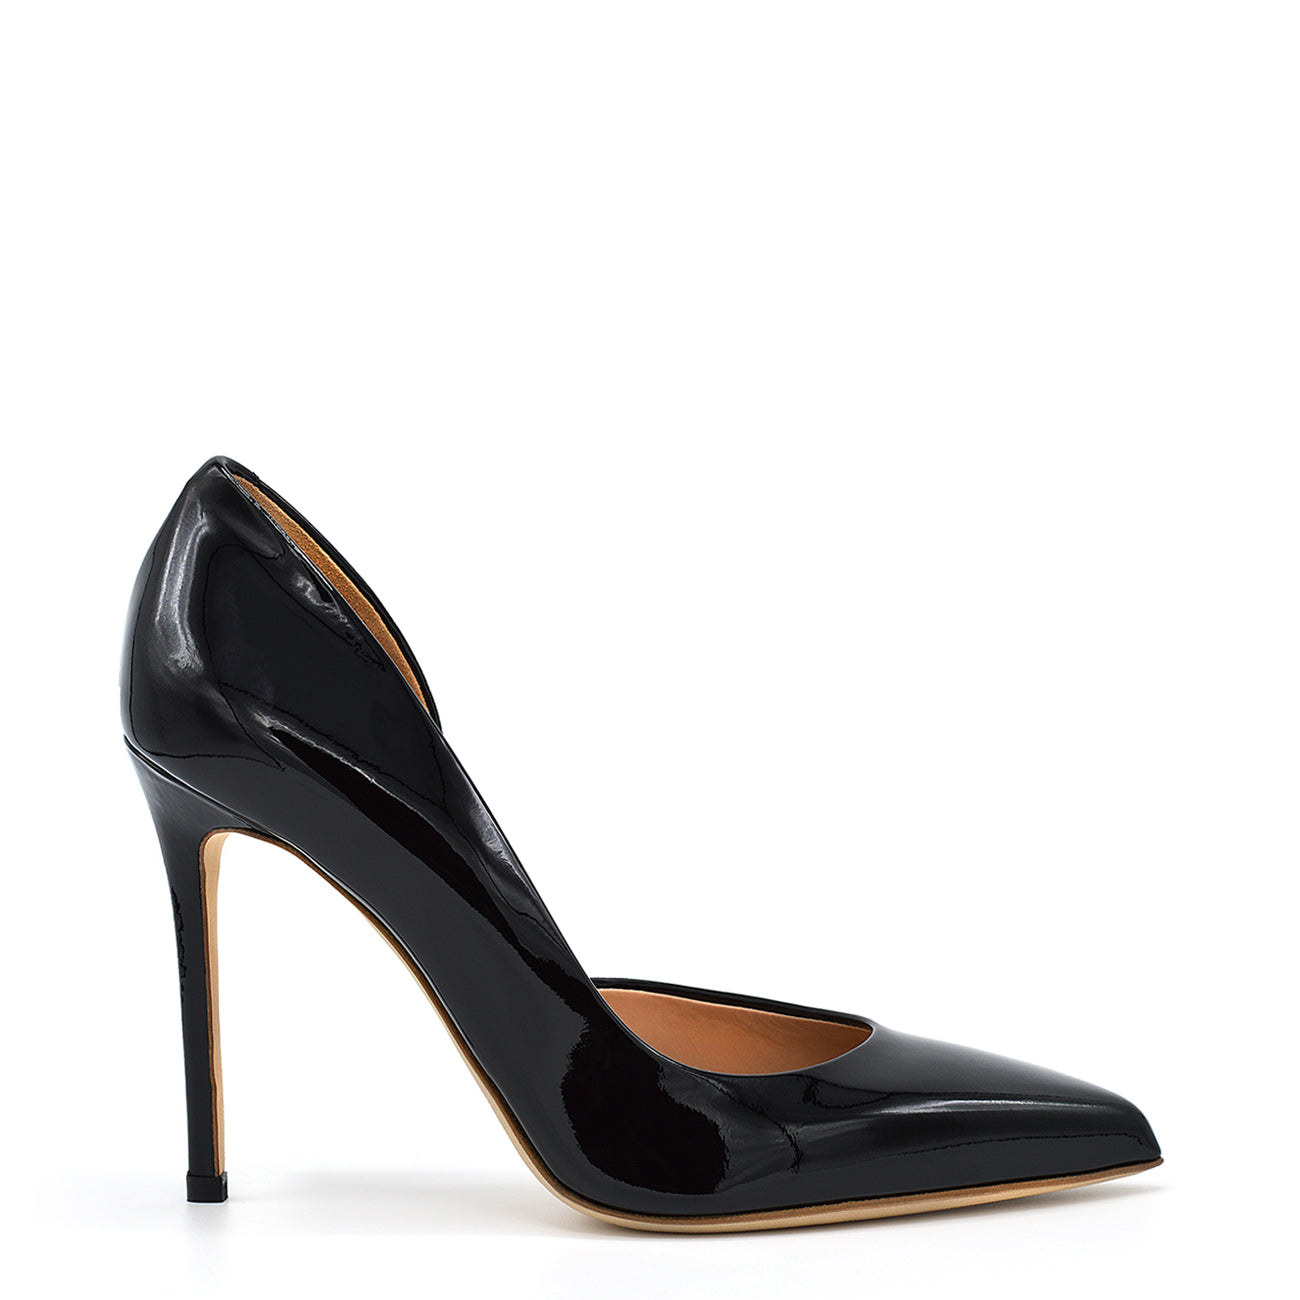 Myla. <br> Black patent leather pumps